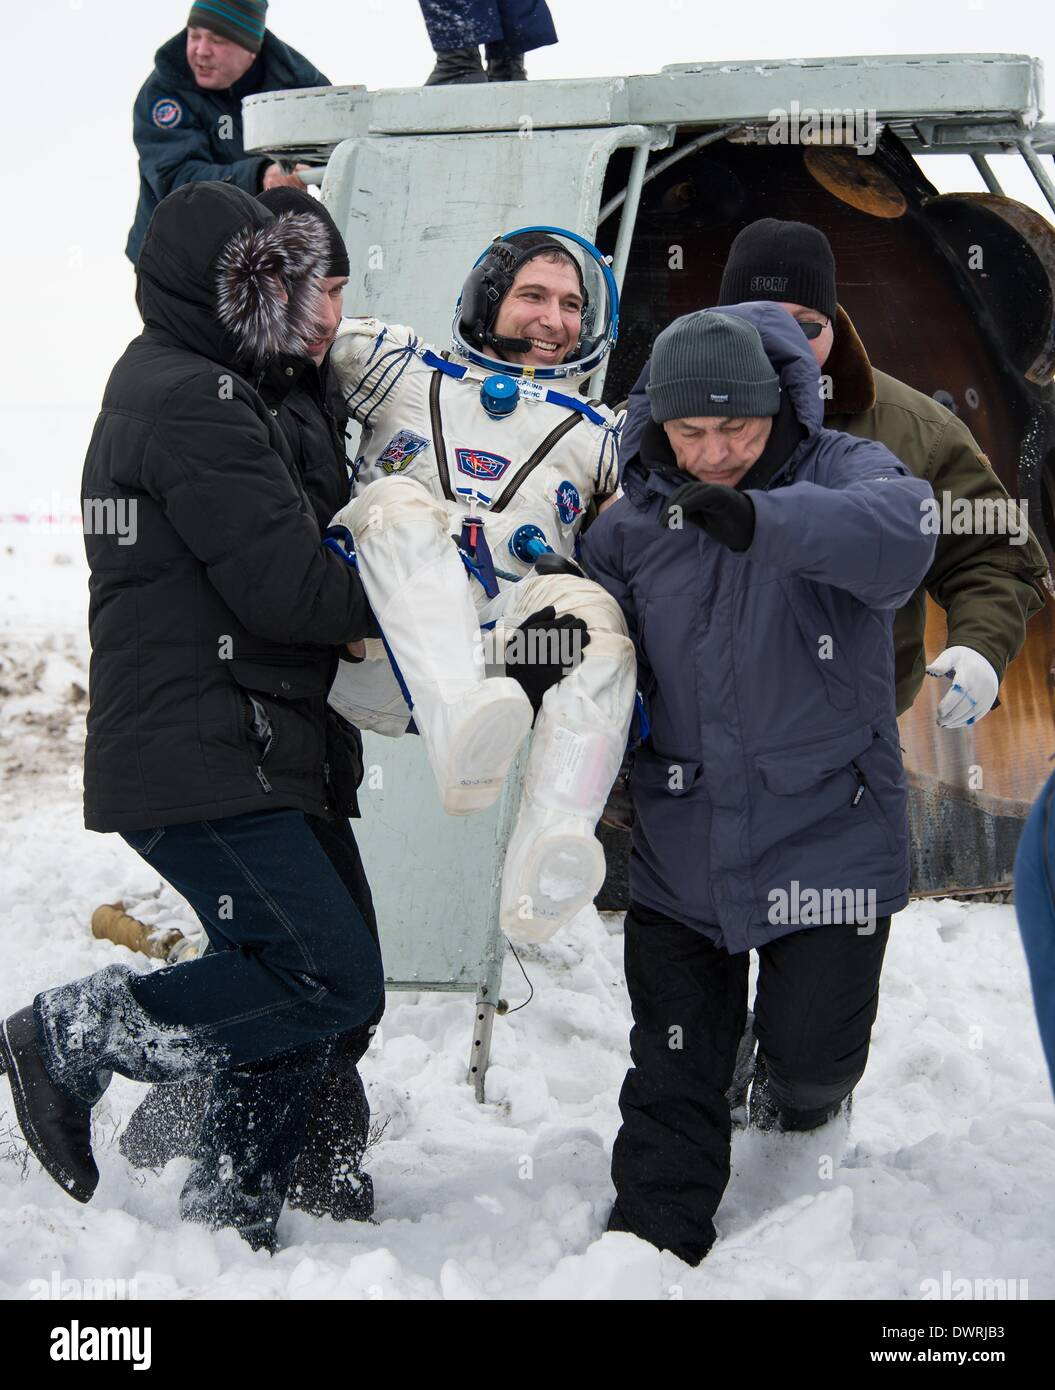 Karaganda airport, Kazakhstan. 11th March, 2014. International Space State Expedition 38 astronaut Mike Hopkins of NASA is lifted out of the Soyuz Capsule after landing in a Soyuz TMA-10M spacecraft March 11, 2014 near the town of Zhezkazgan, Kazakhstan. Hopkins, Kotov and Ryazanskiy returned to Earth after five and a half months onboard the International Space Station. Credit:  Planetpix/Alamy Live News - Stock Image